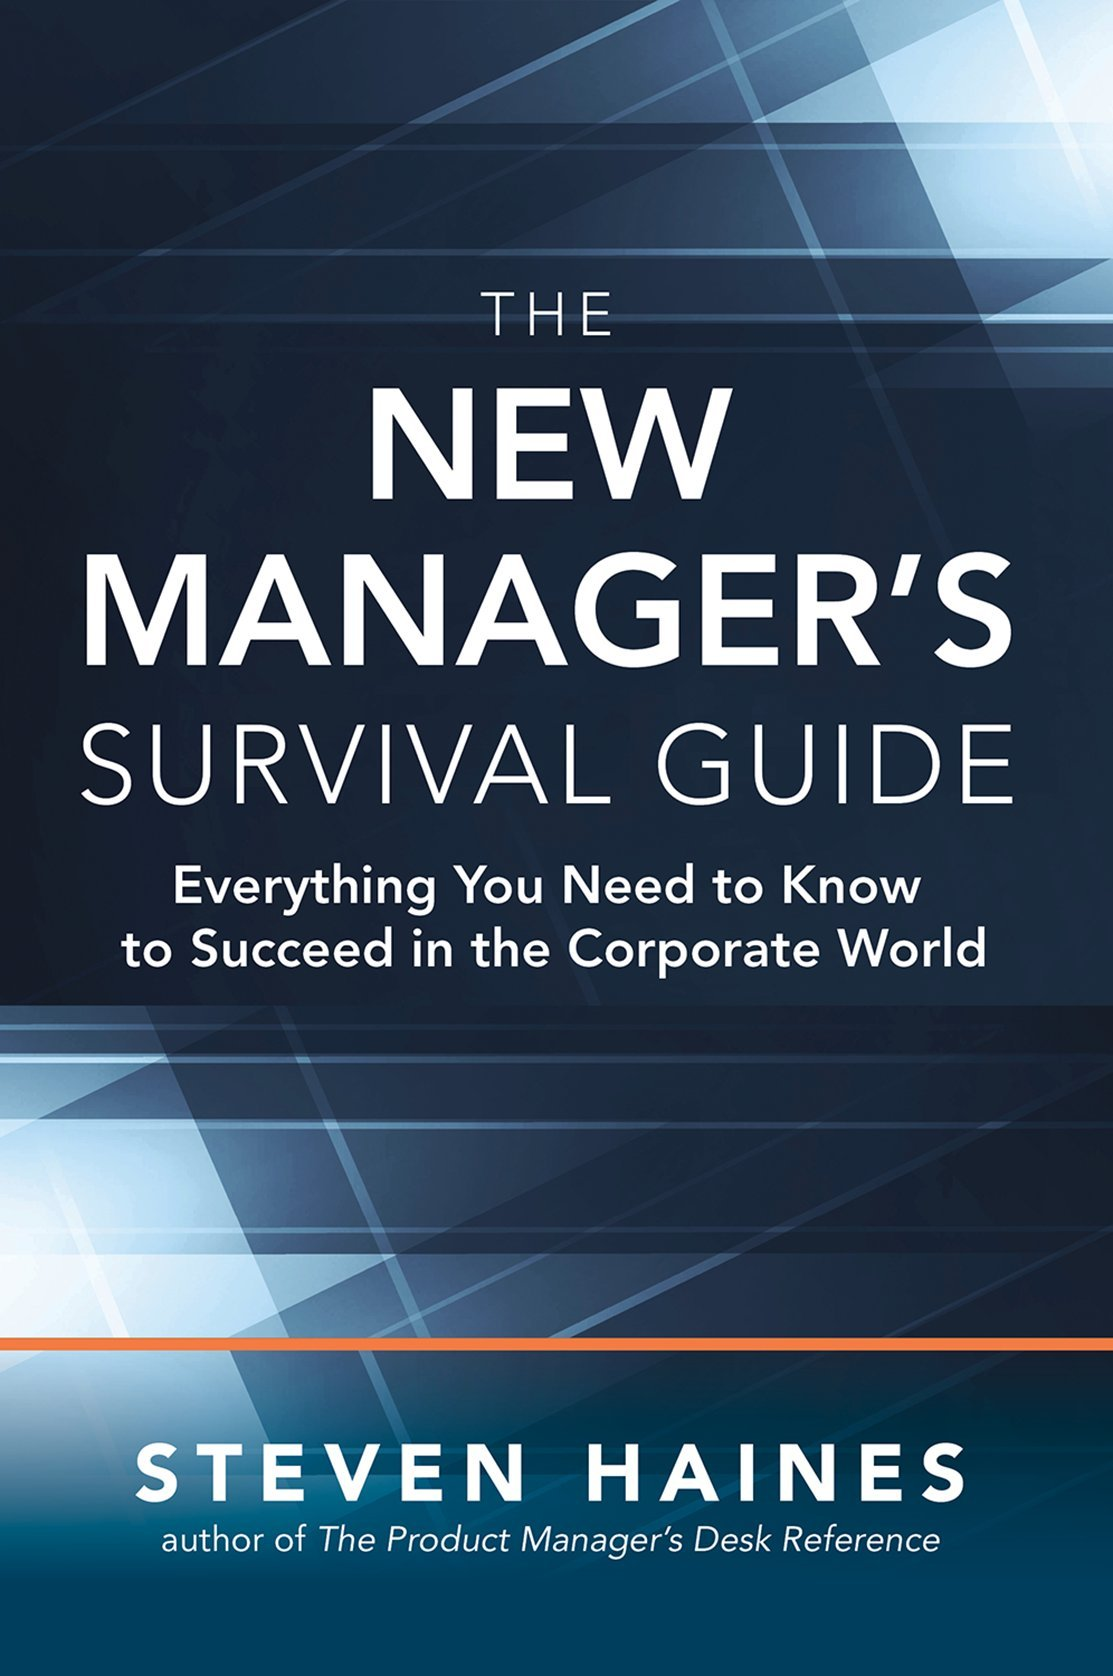 The New Manager's Survival Guide: Everything You Need to Know to Succeed in  the Corporate World: Steven Haines: 9781259588976: Amazon.com: Books